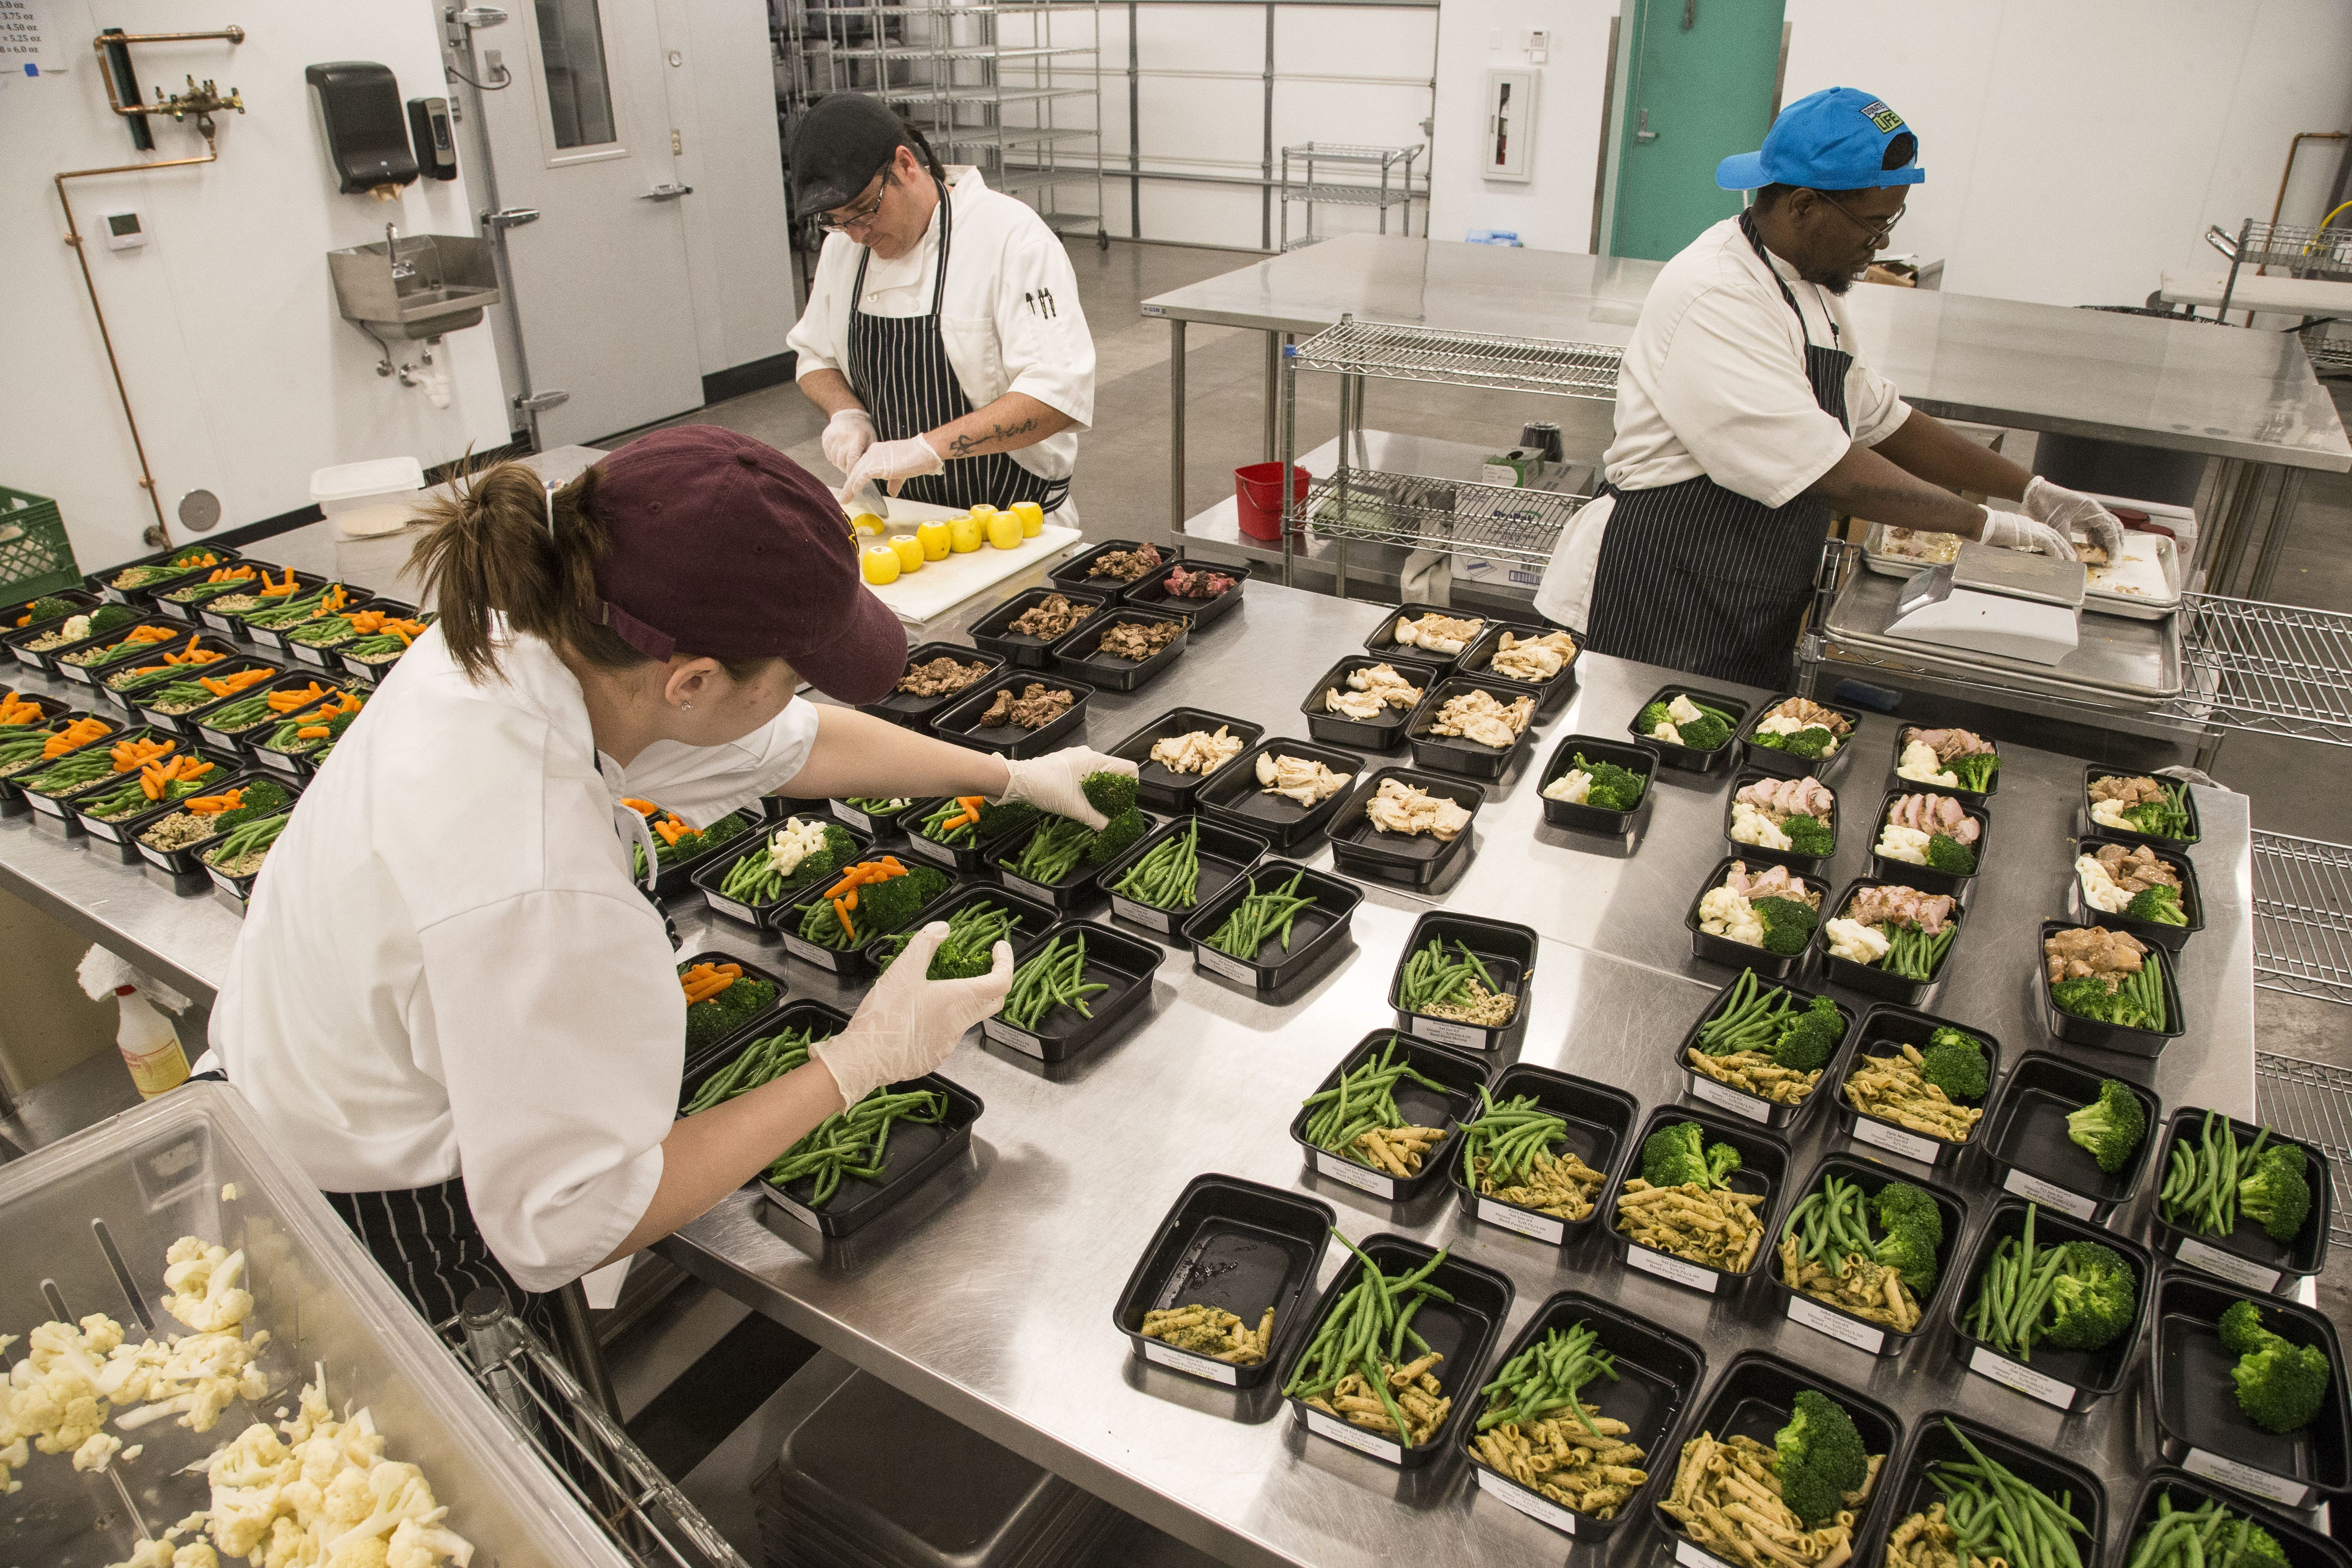 Struggling with family dinners during hectic work weeks? Consider local meal providers